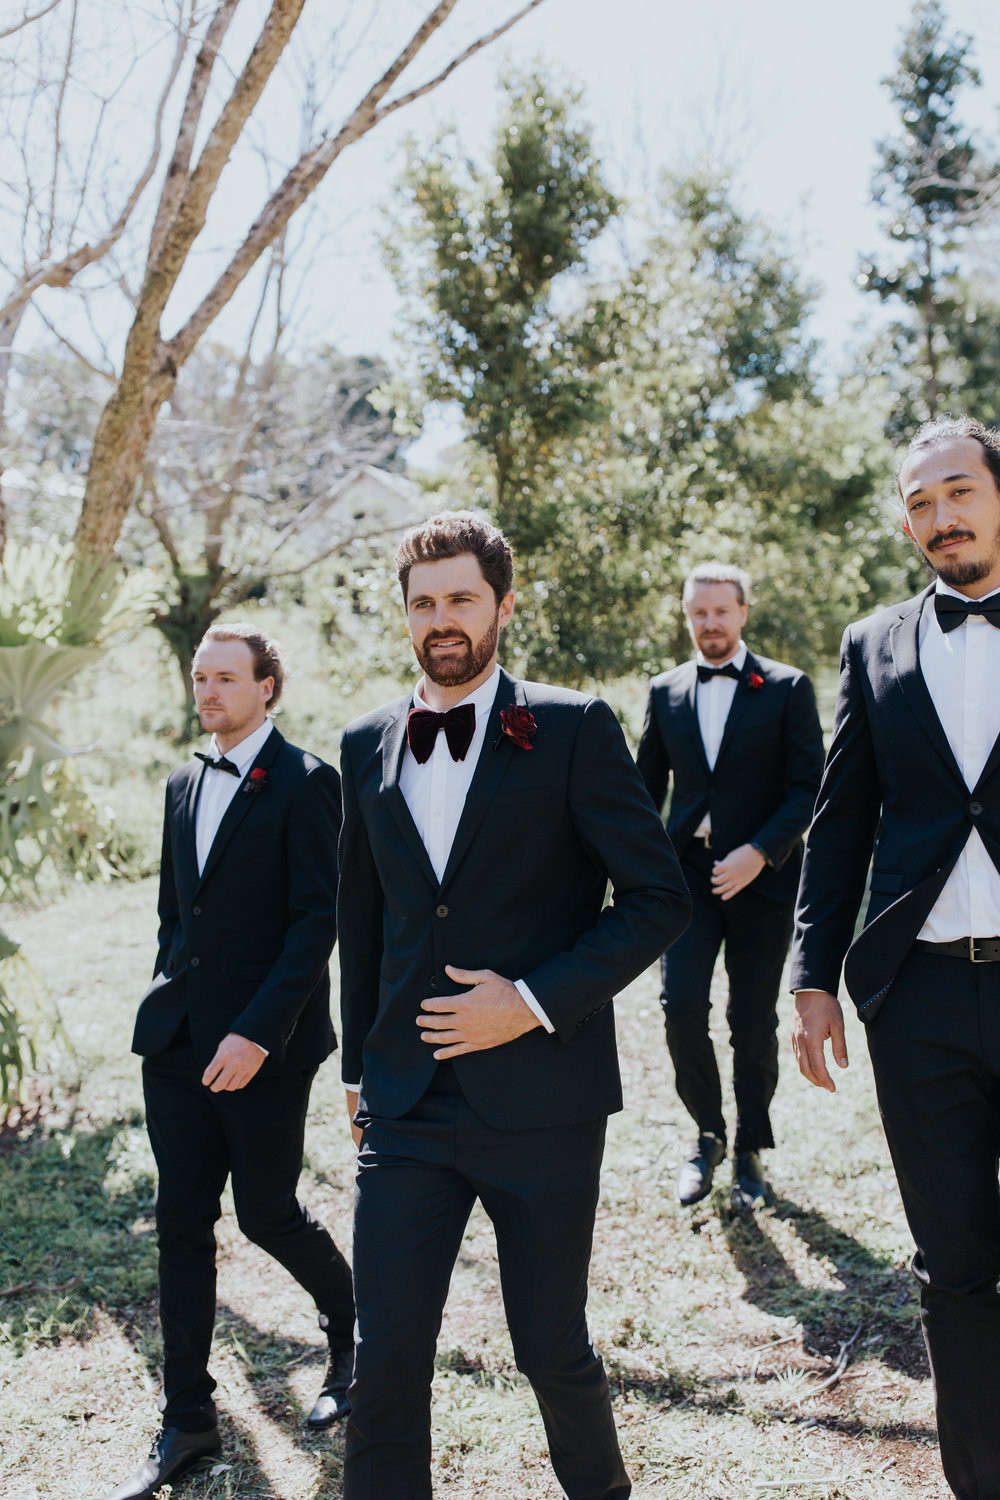 Bloodwood Botanica | Maleny red wedding flowers groomsmen buttonholes